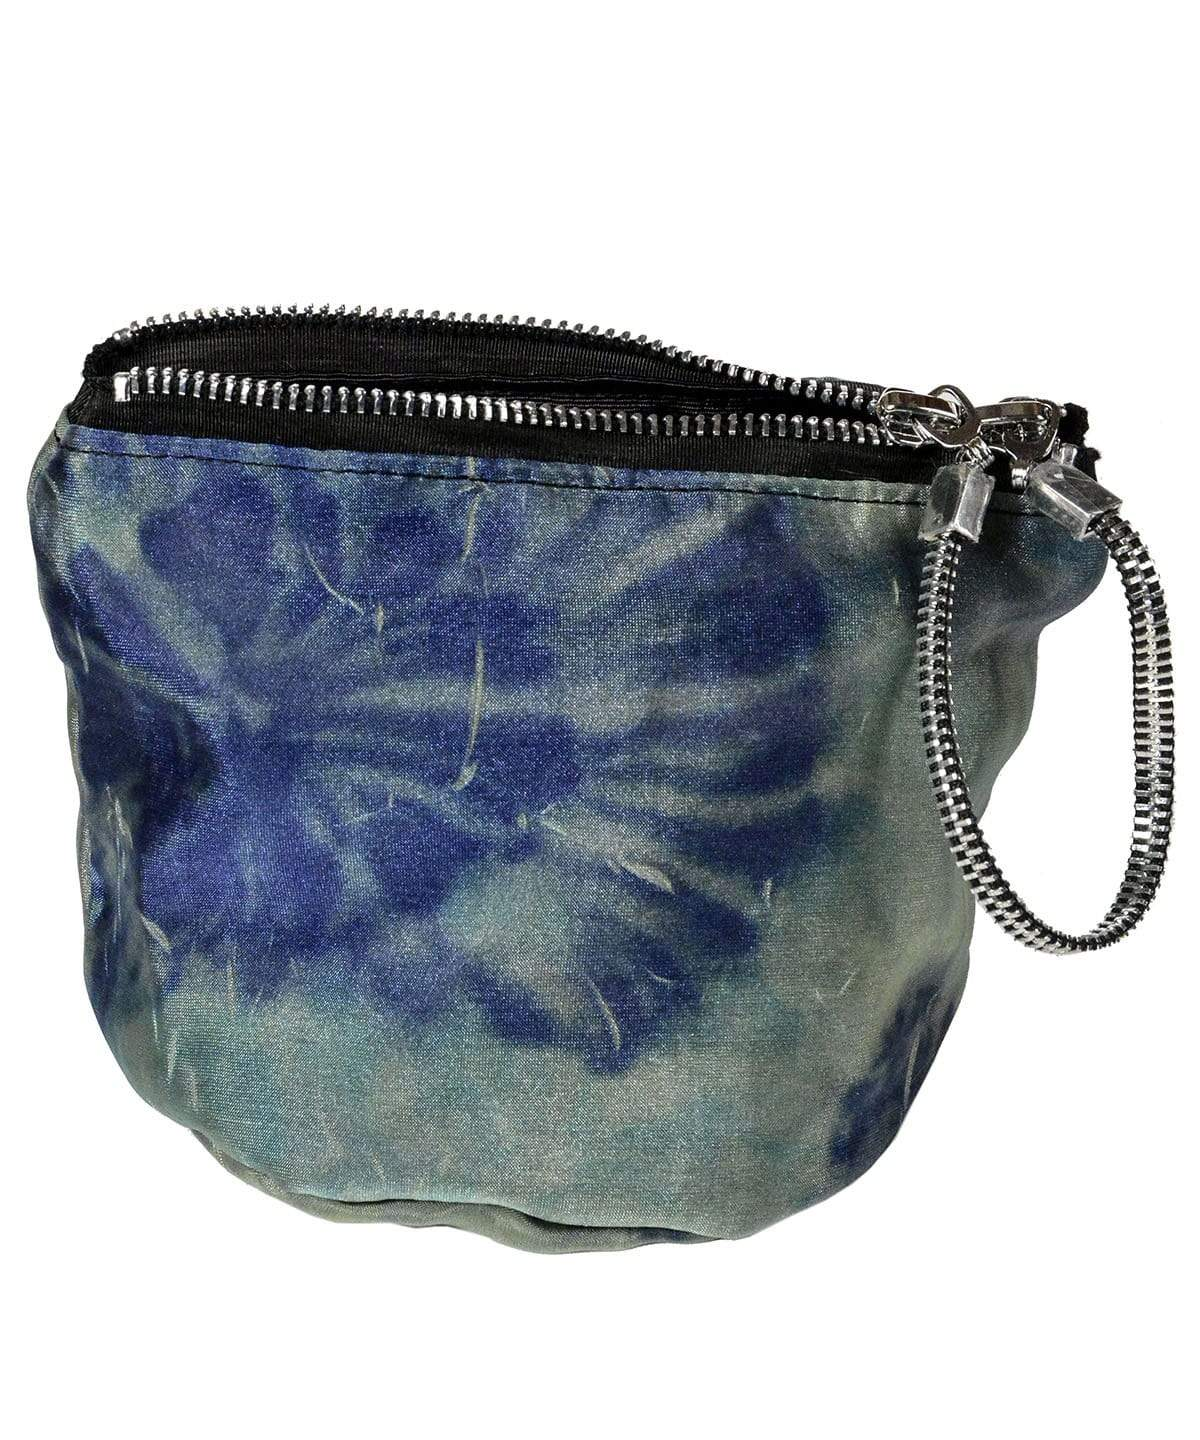 Pandemonium Millinery Ibiza After Six Bag - Coastal Garden Collection Coastal Garden in Agave Handbag